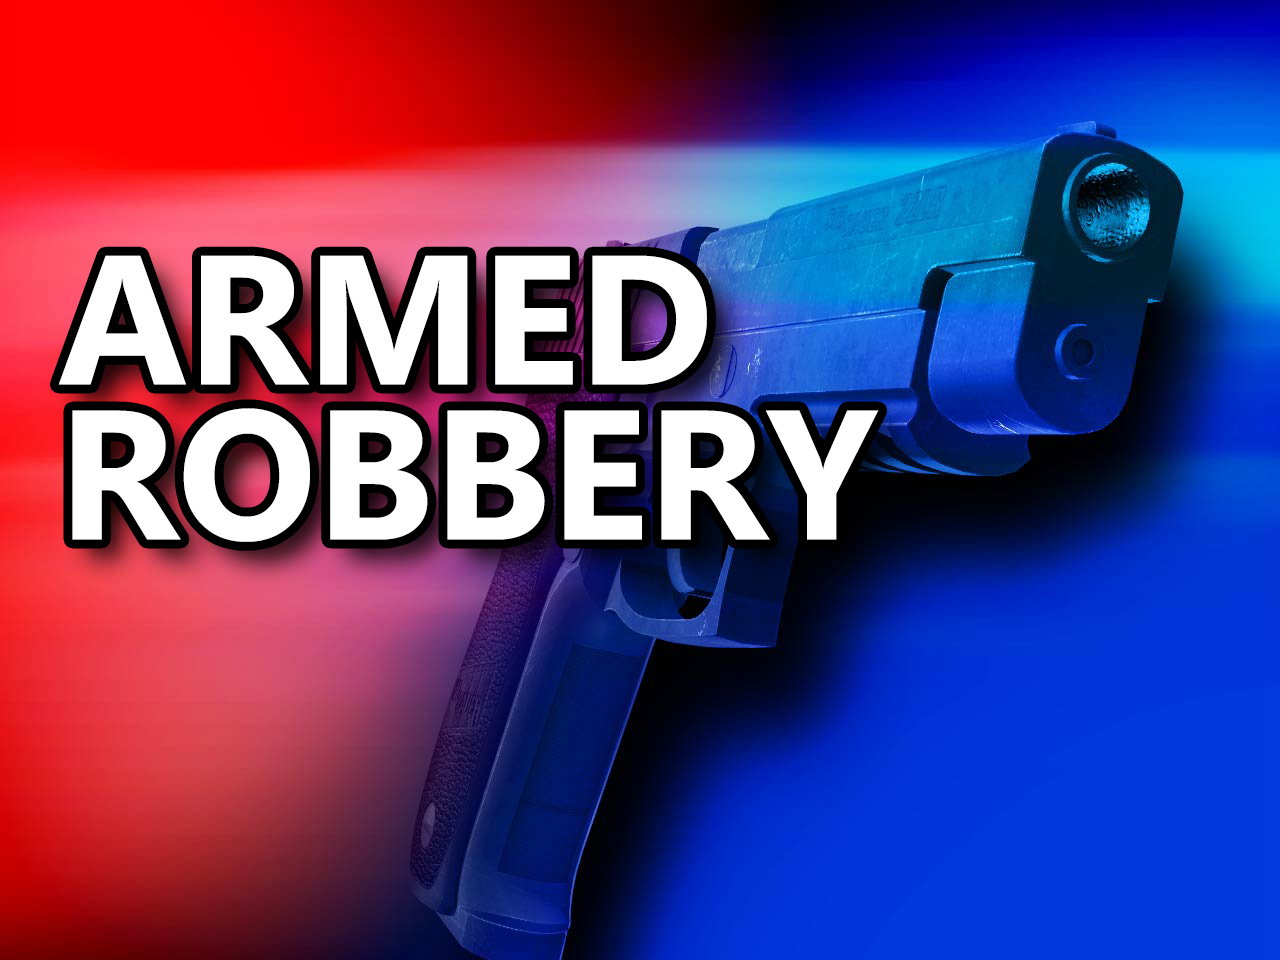 Armed robbery reported this morning in Columbia